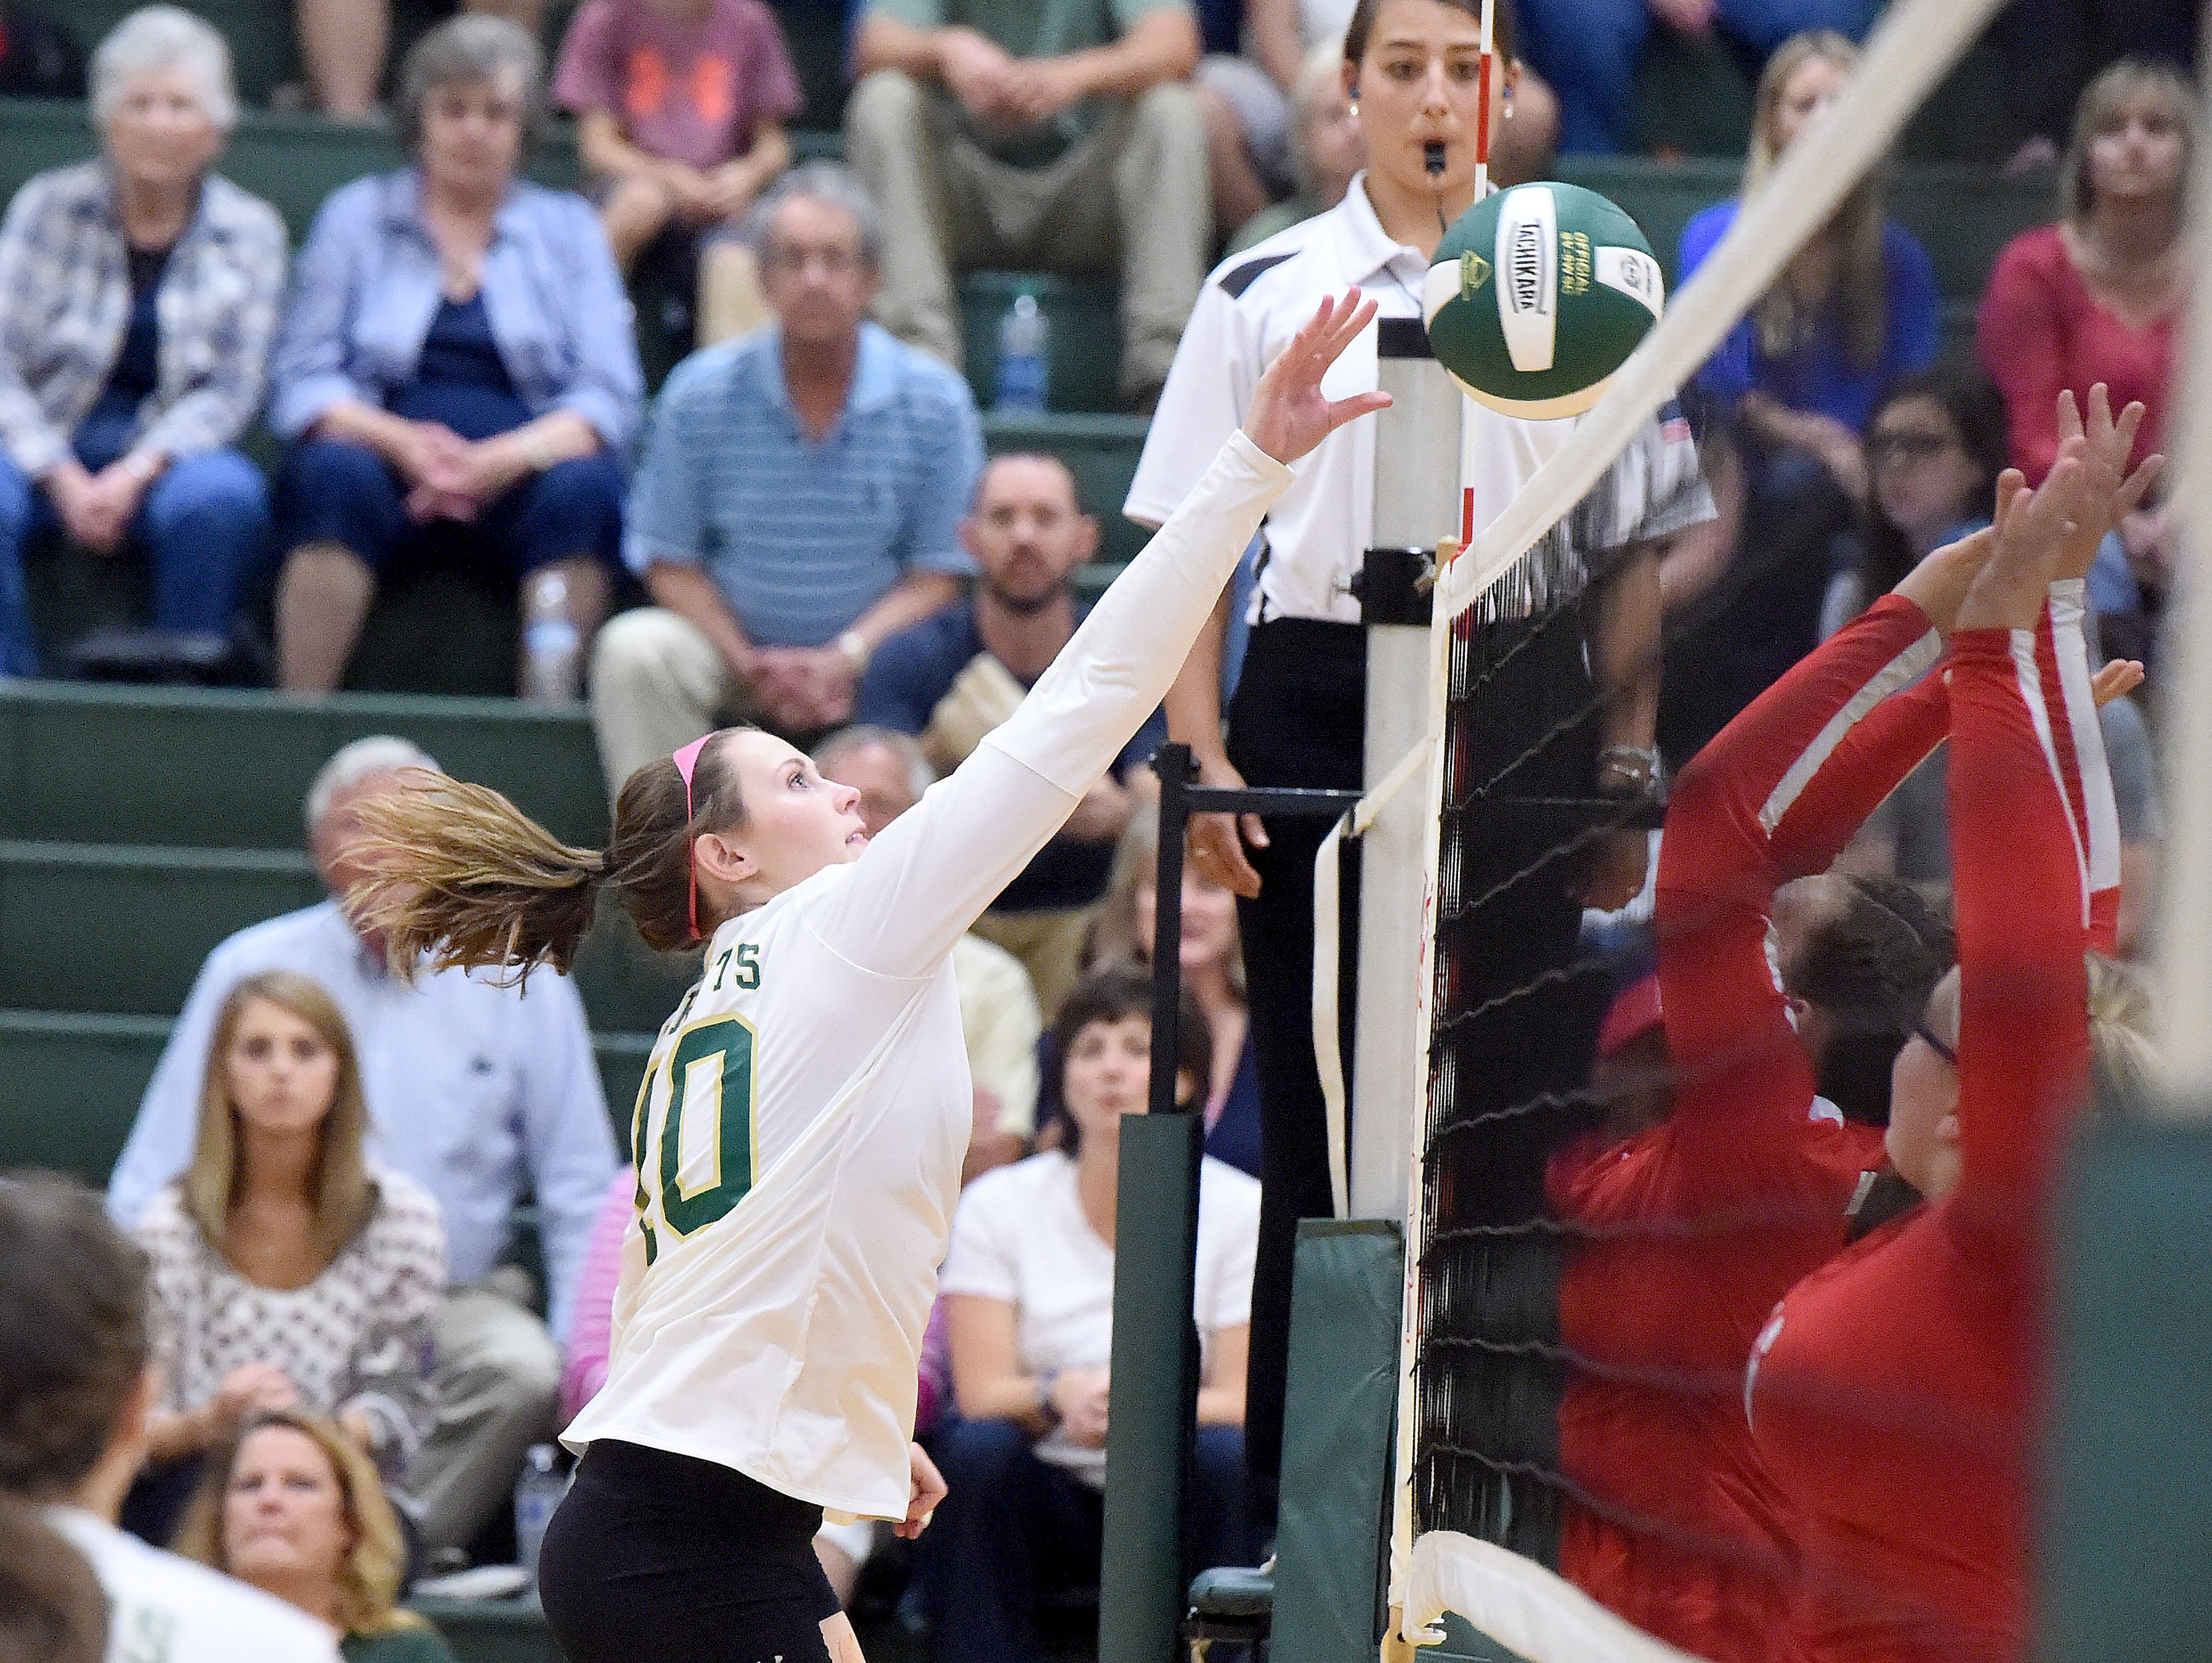 Wilson Memorial's Addison Tuttle sends the ball back across the net during a volleyball match played in Fishersville on Thursday, Oct. 20, 2016.